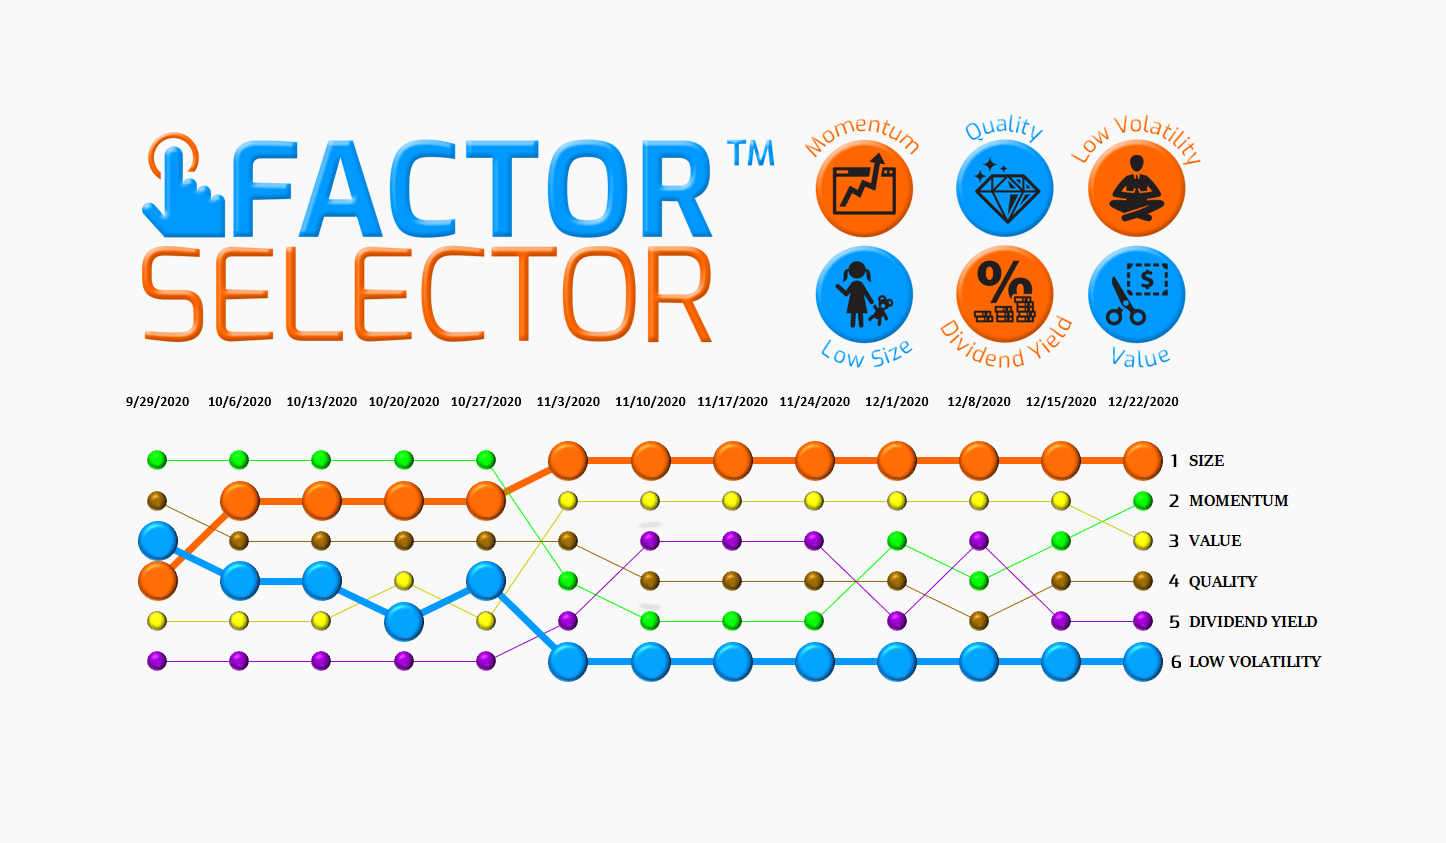 Factor Selector™  – 12/23/20 via @https://www.pinterest.com/market_scholars